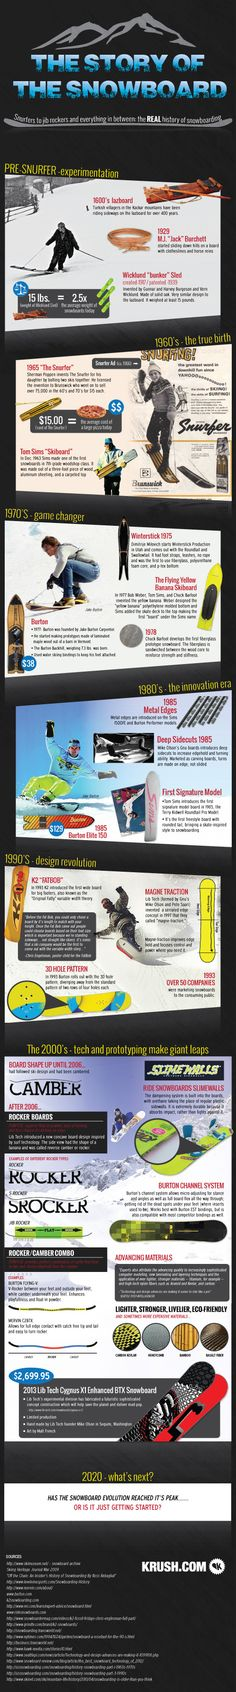 The overall History of Snowboarding Mervin MFG. LibTech Gnu do quite well others follow they do not lead to often.